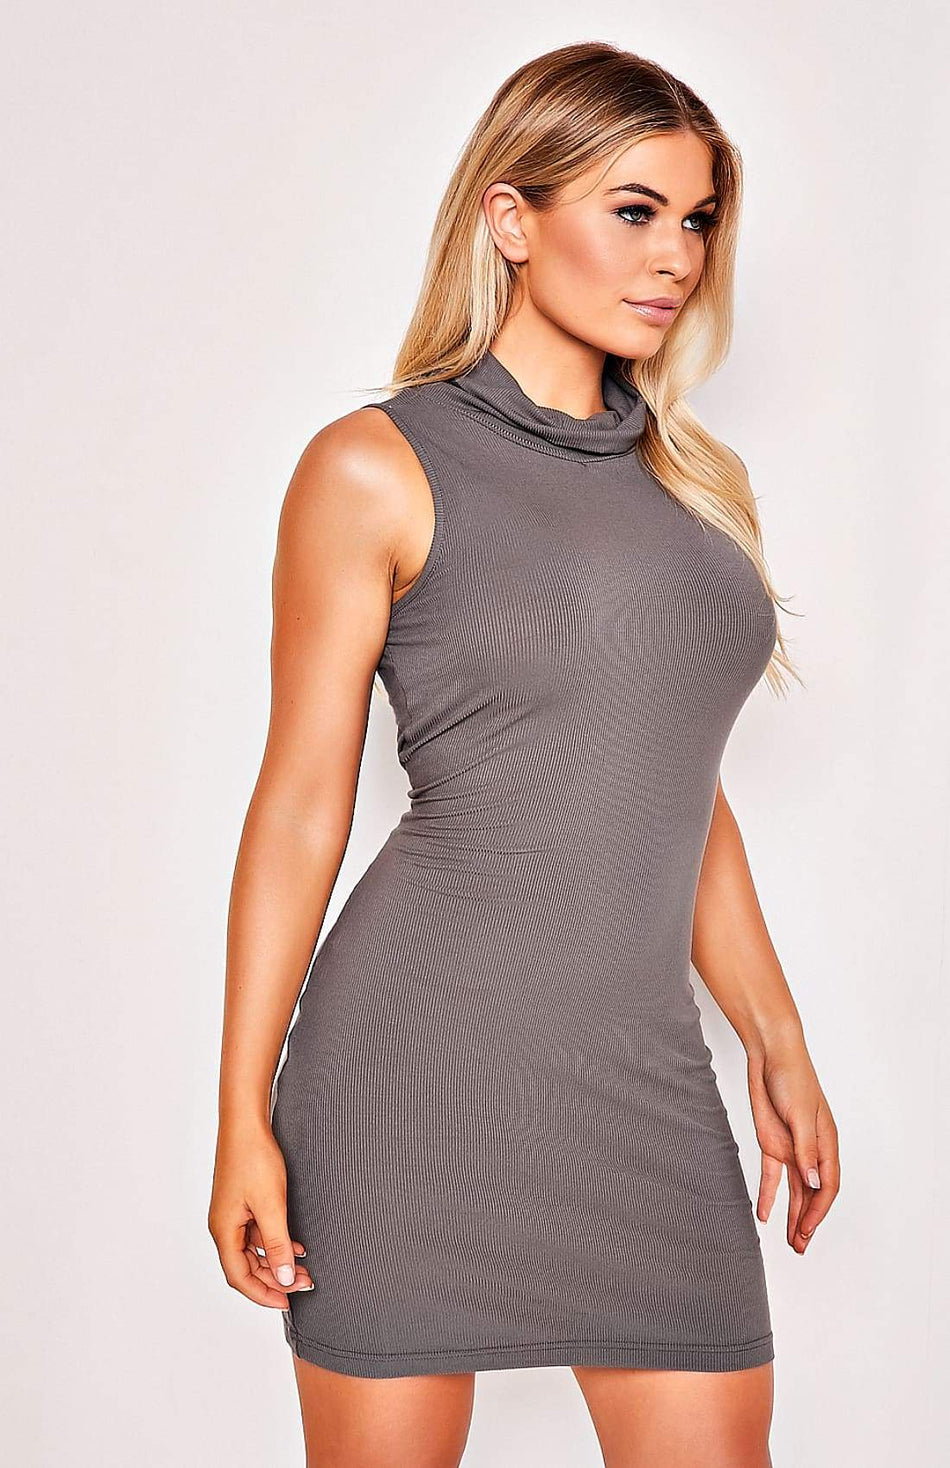 Grey High Collar Sleeveless Stretch Mini Dress